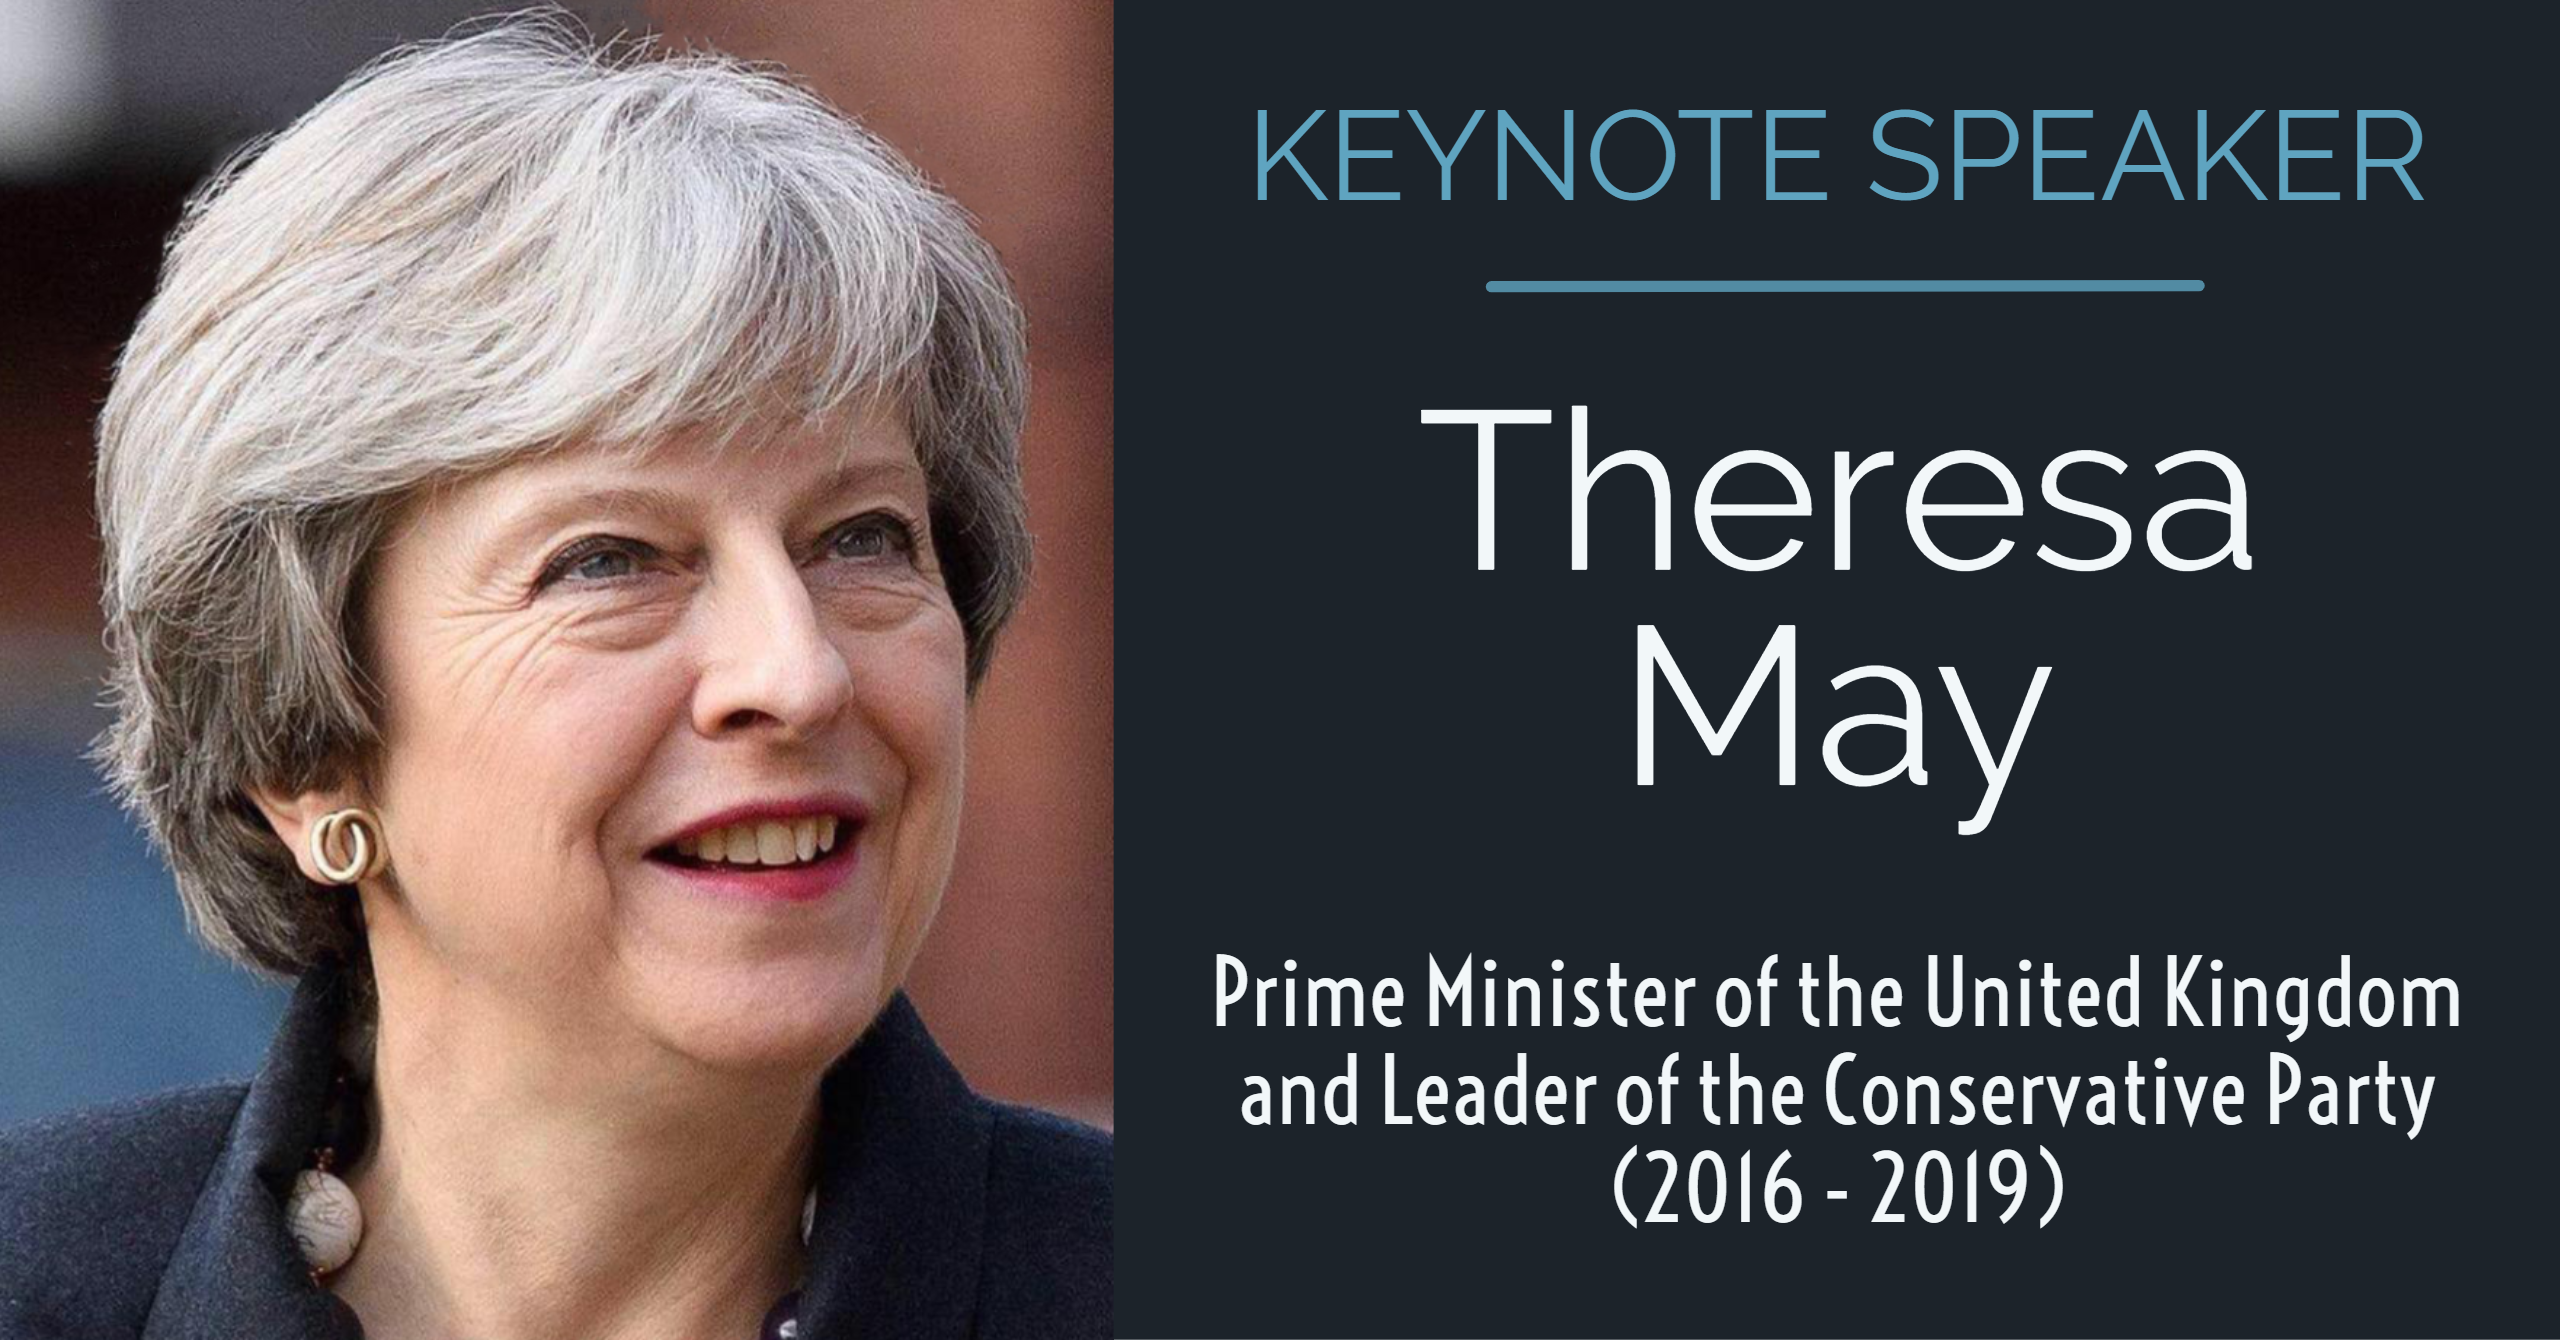 Keynote Speaker Theresa May